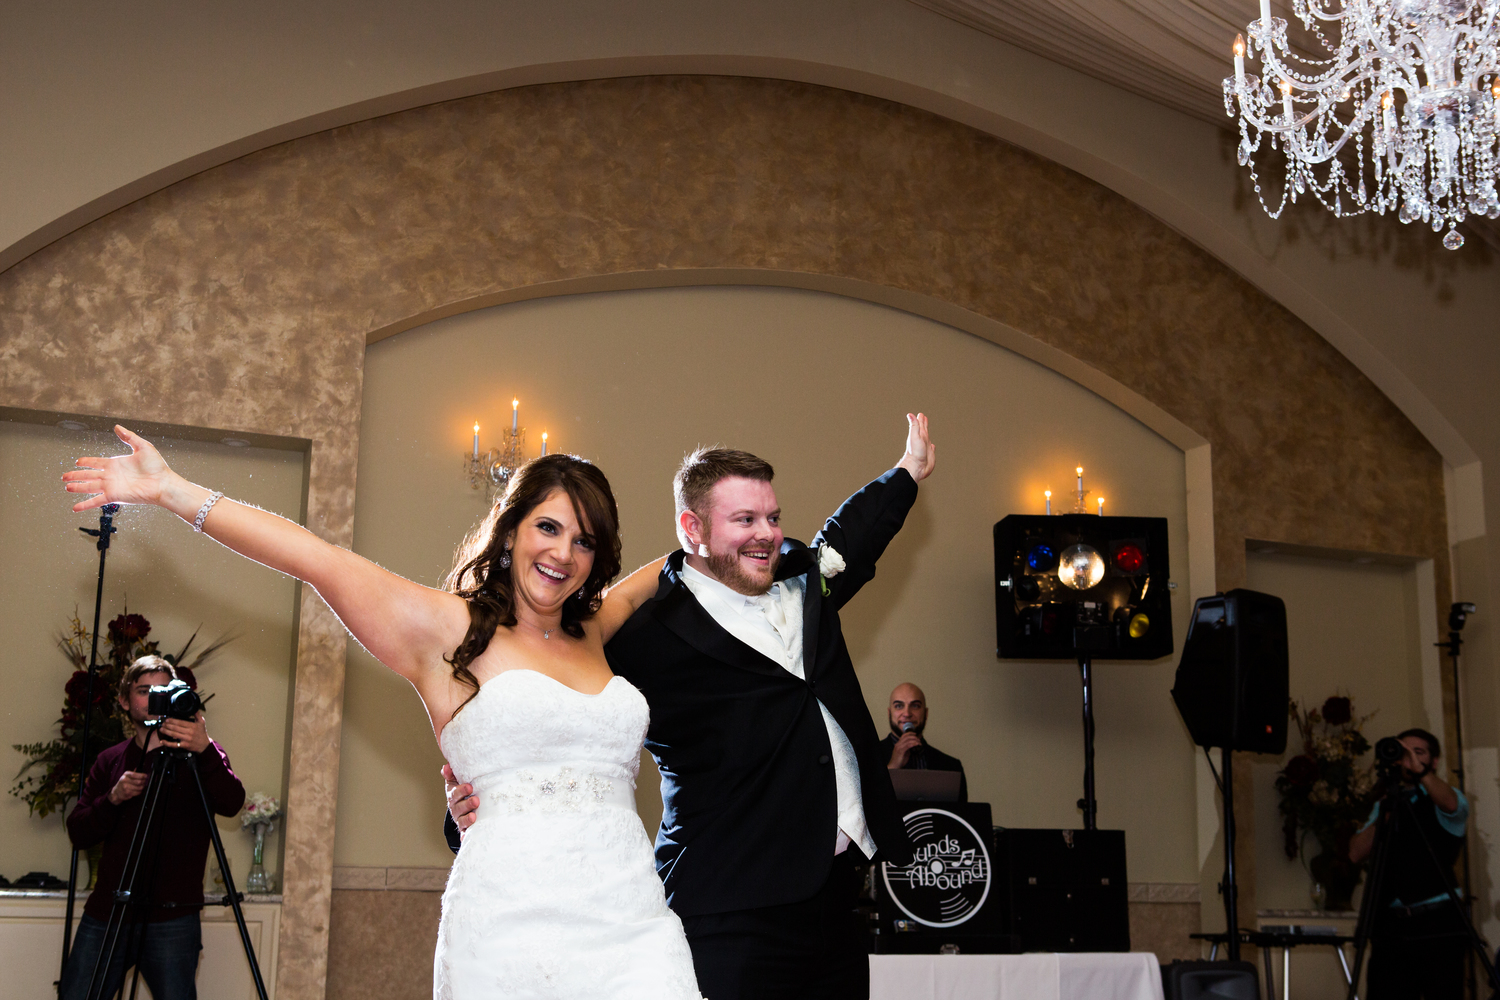 Wedding First Dance Songs by Dance Style — Duet Dance Studio Chicago ...